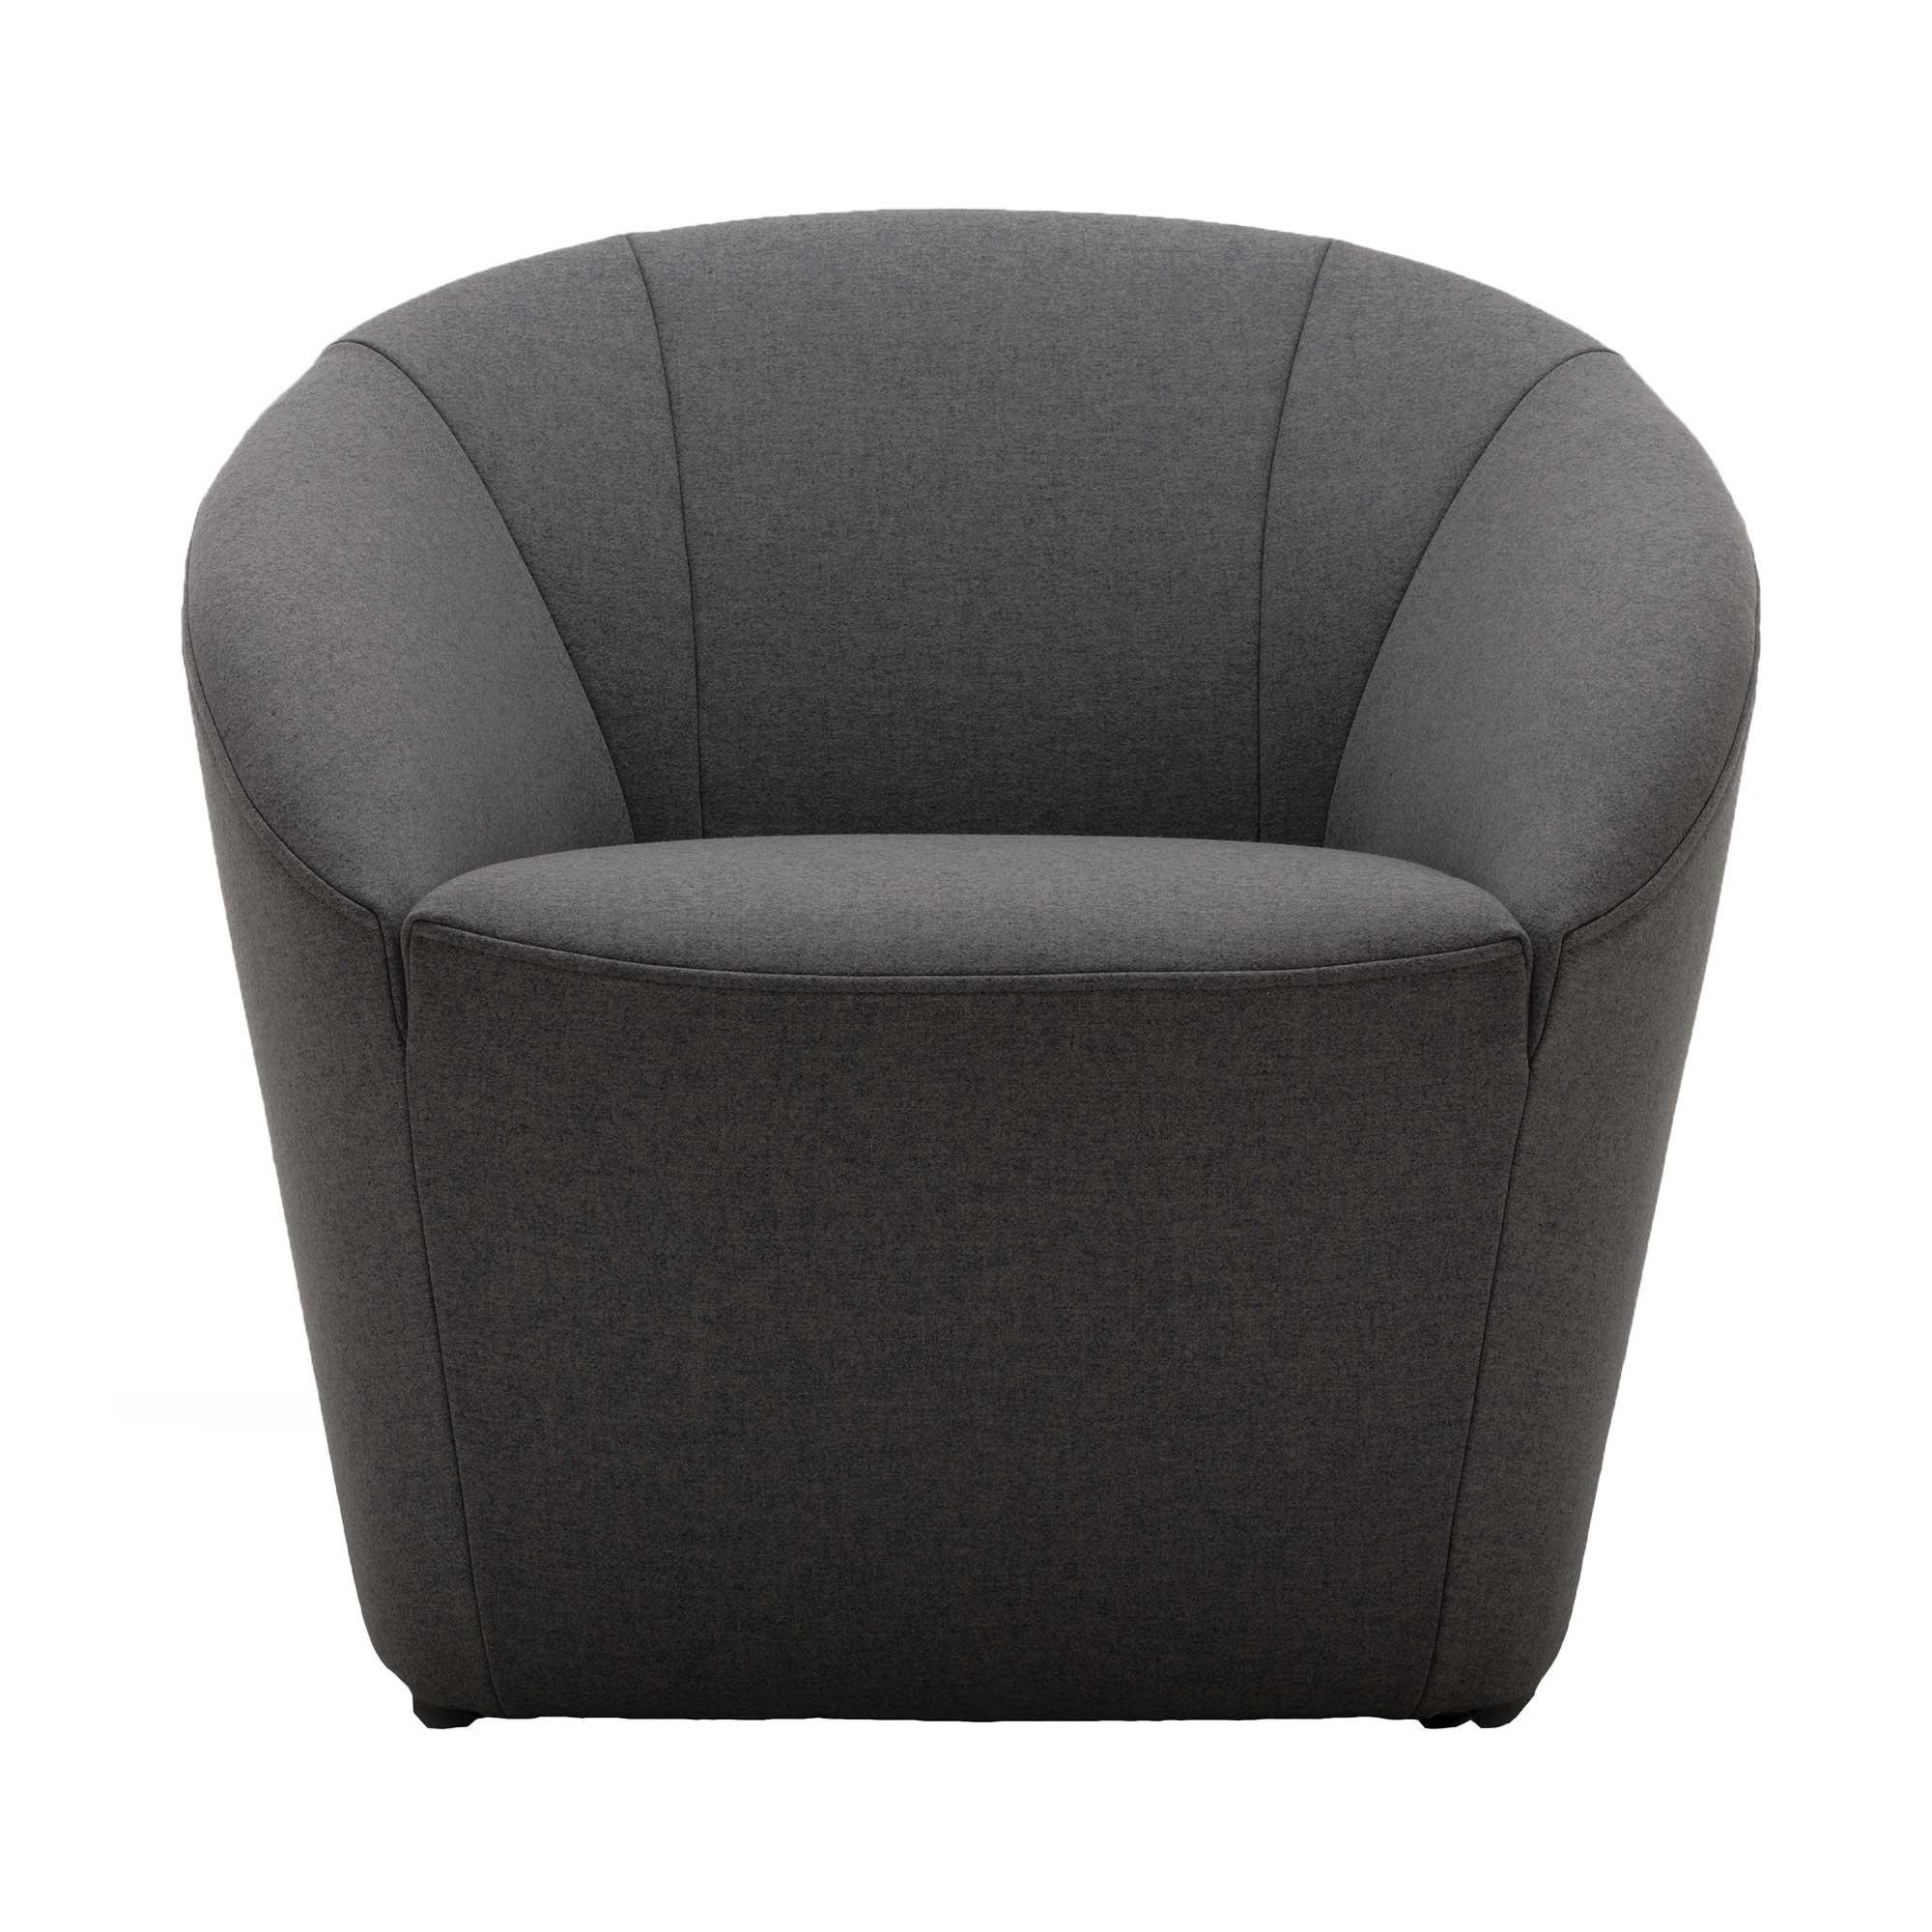 Freistil Sessel Rolf Benz Freistil 178 Armchair